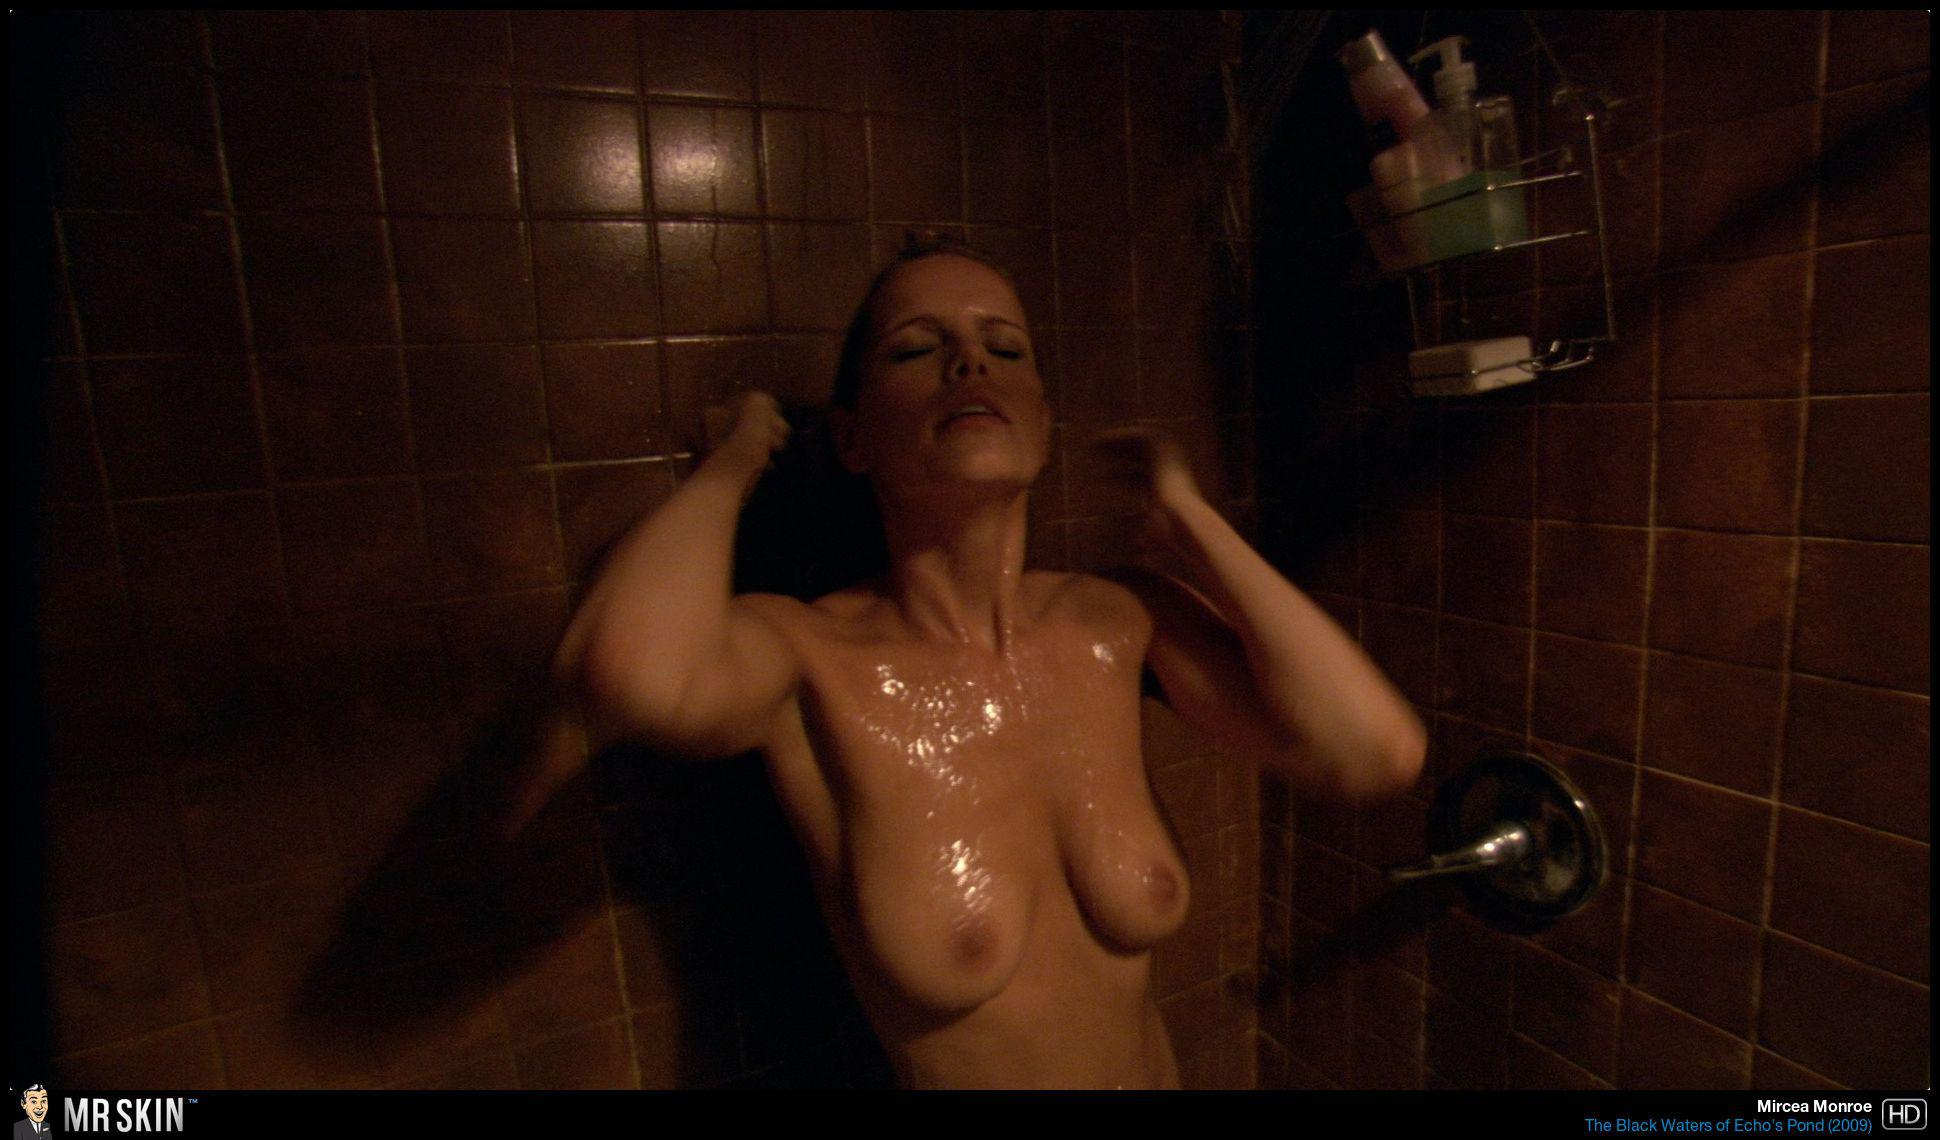 Assured, mircea monroe naked